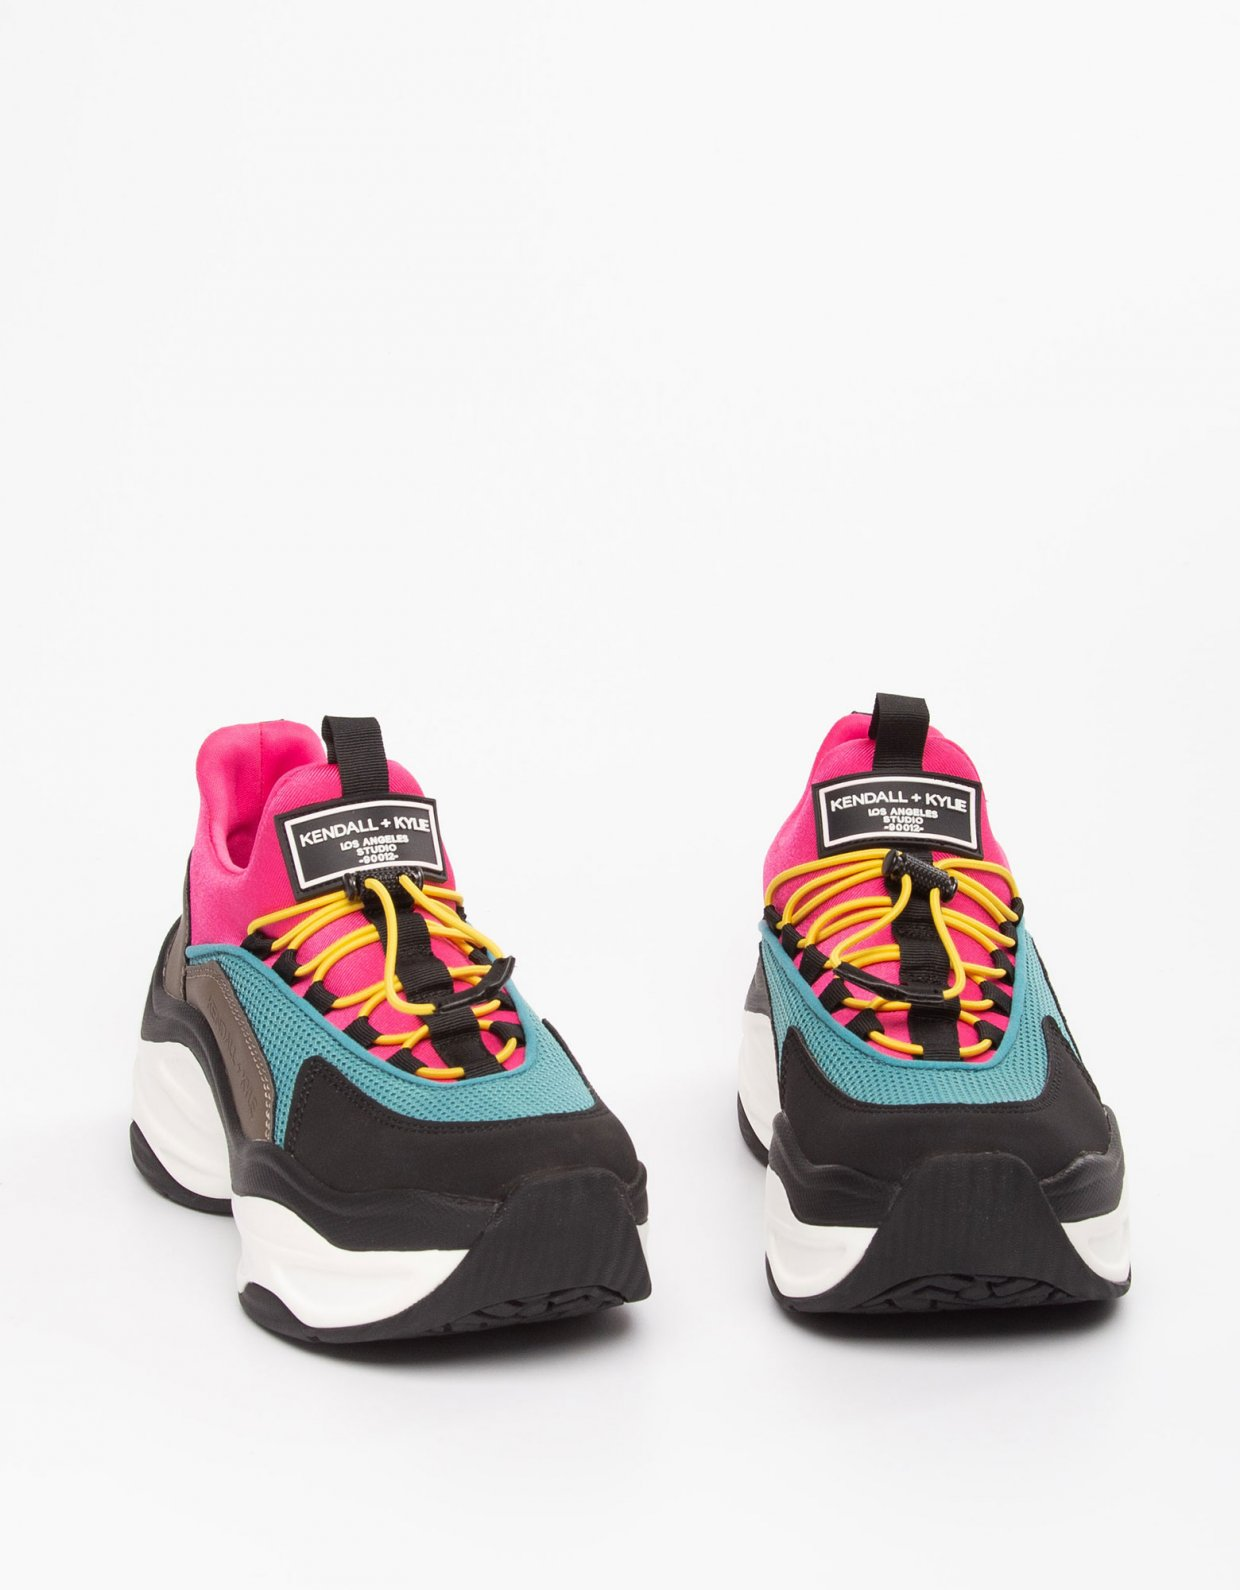 Kendall + Kylie Willow sneakers taupe/teal/fuchsia